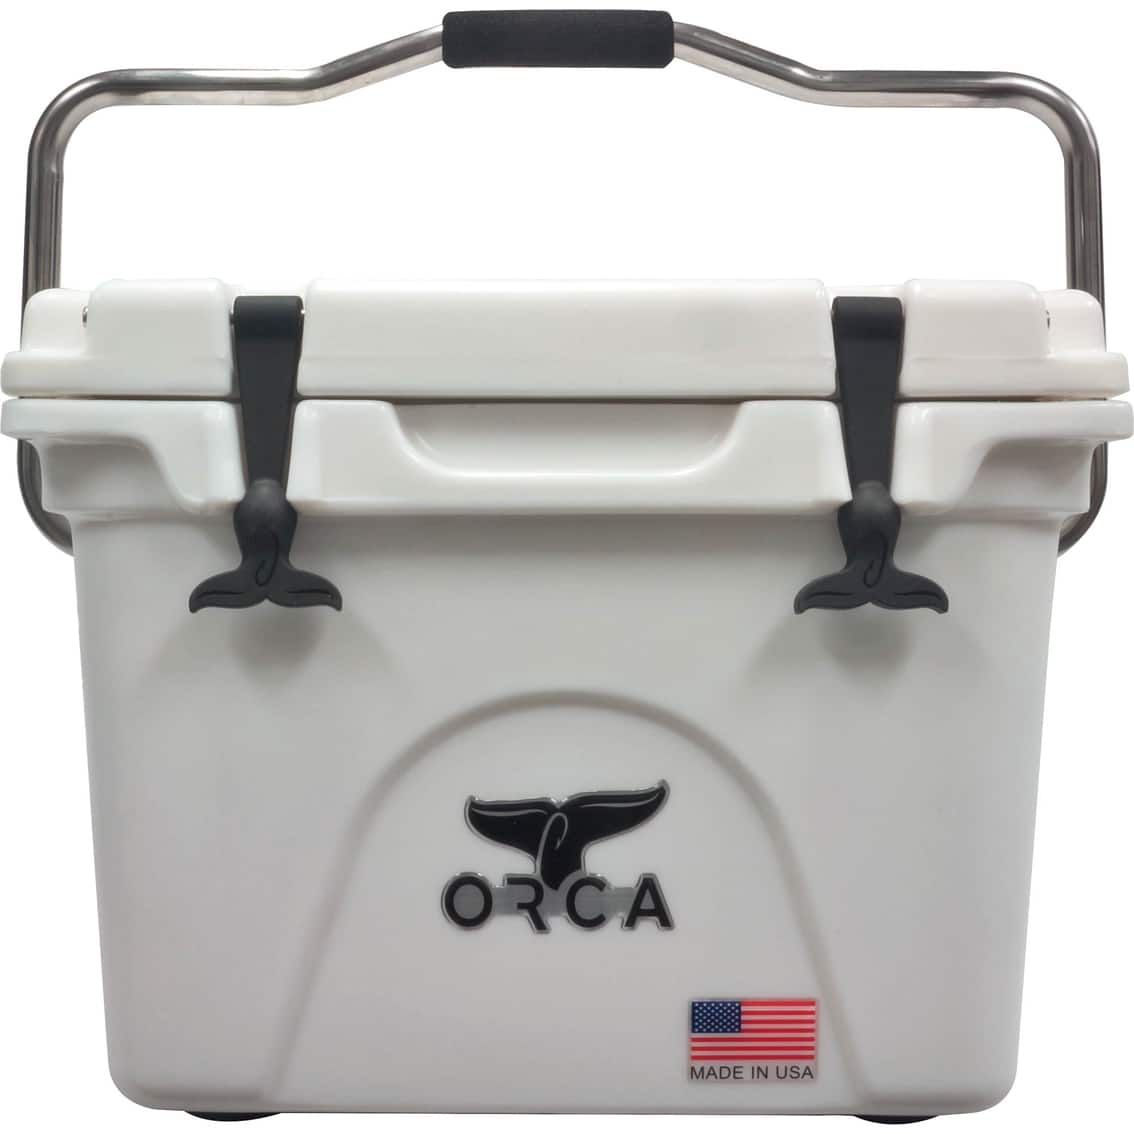 ORCA 20QT Cooler @ AAFES (military only) $121 + FS - 7/25 only